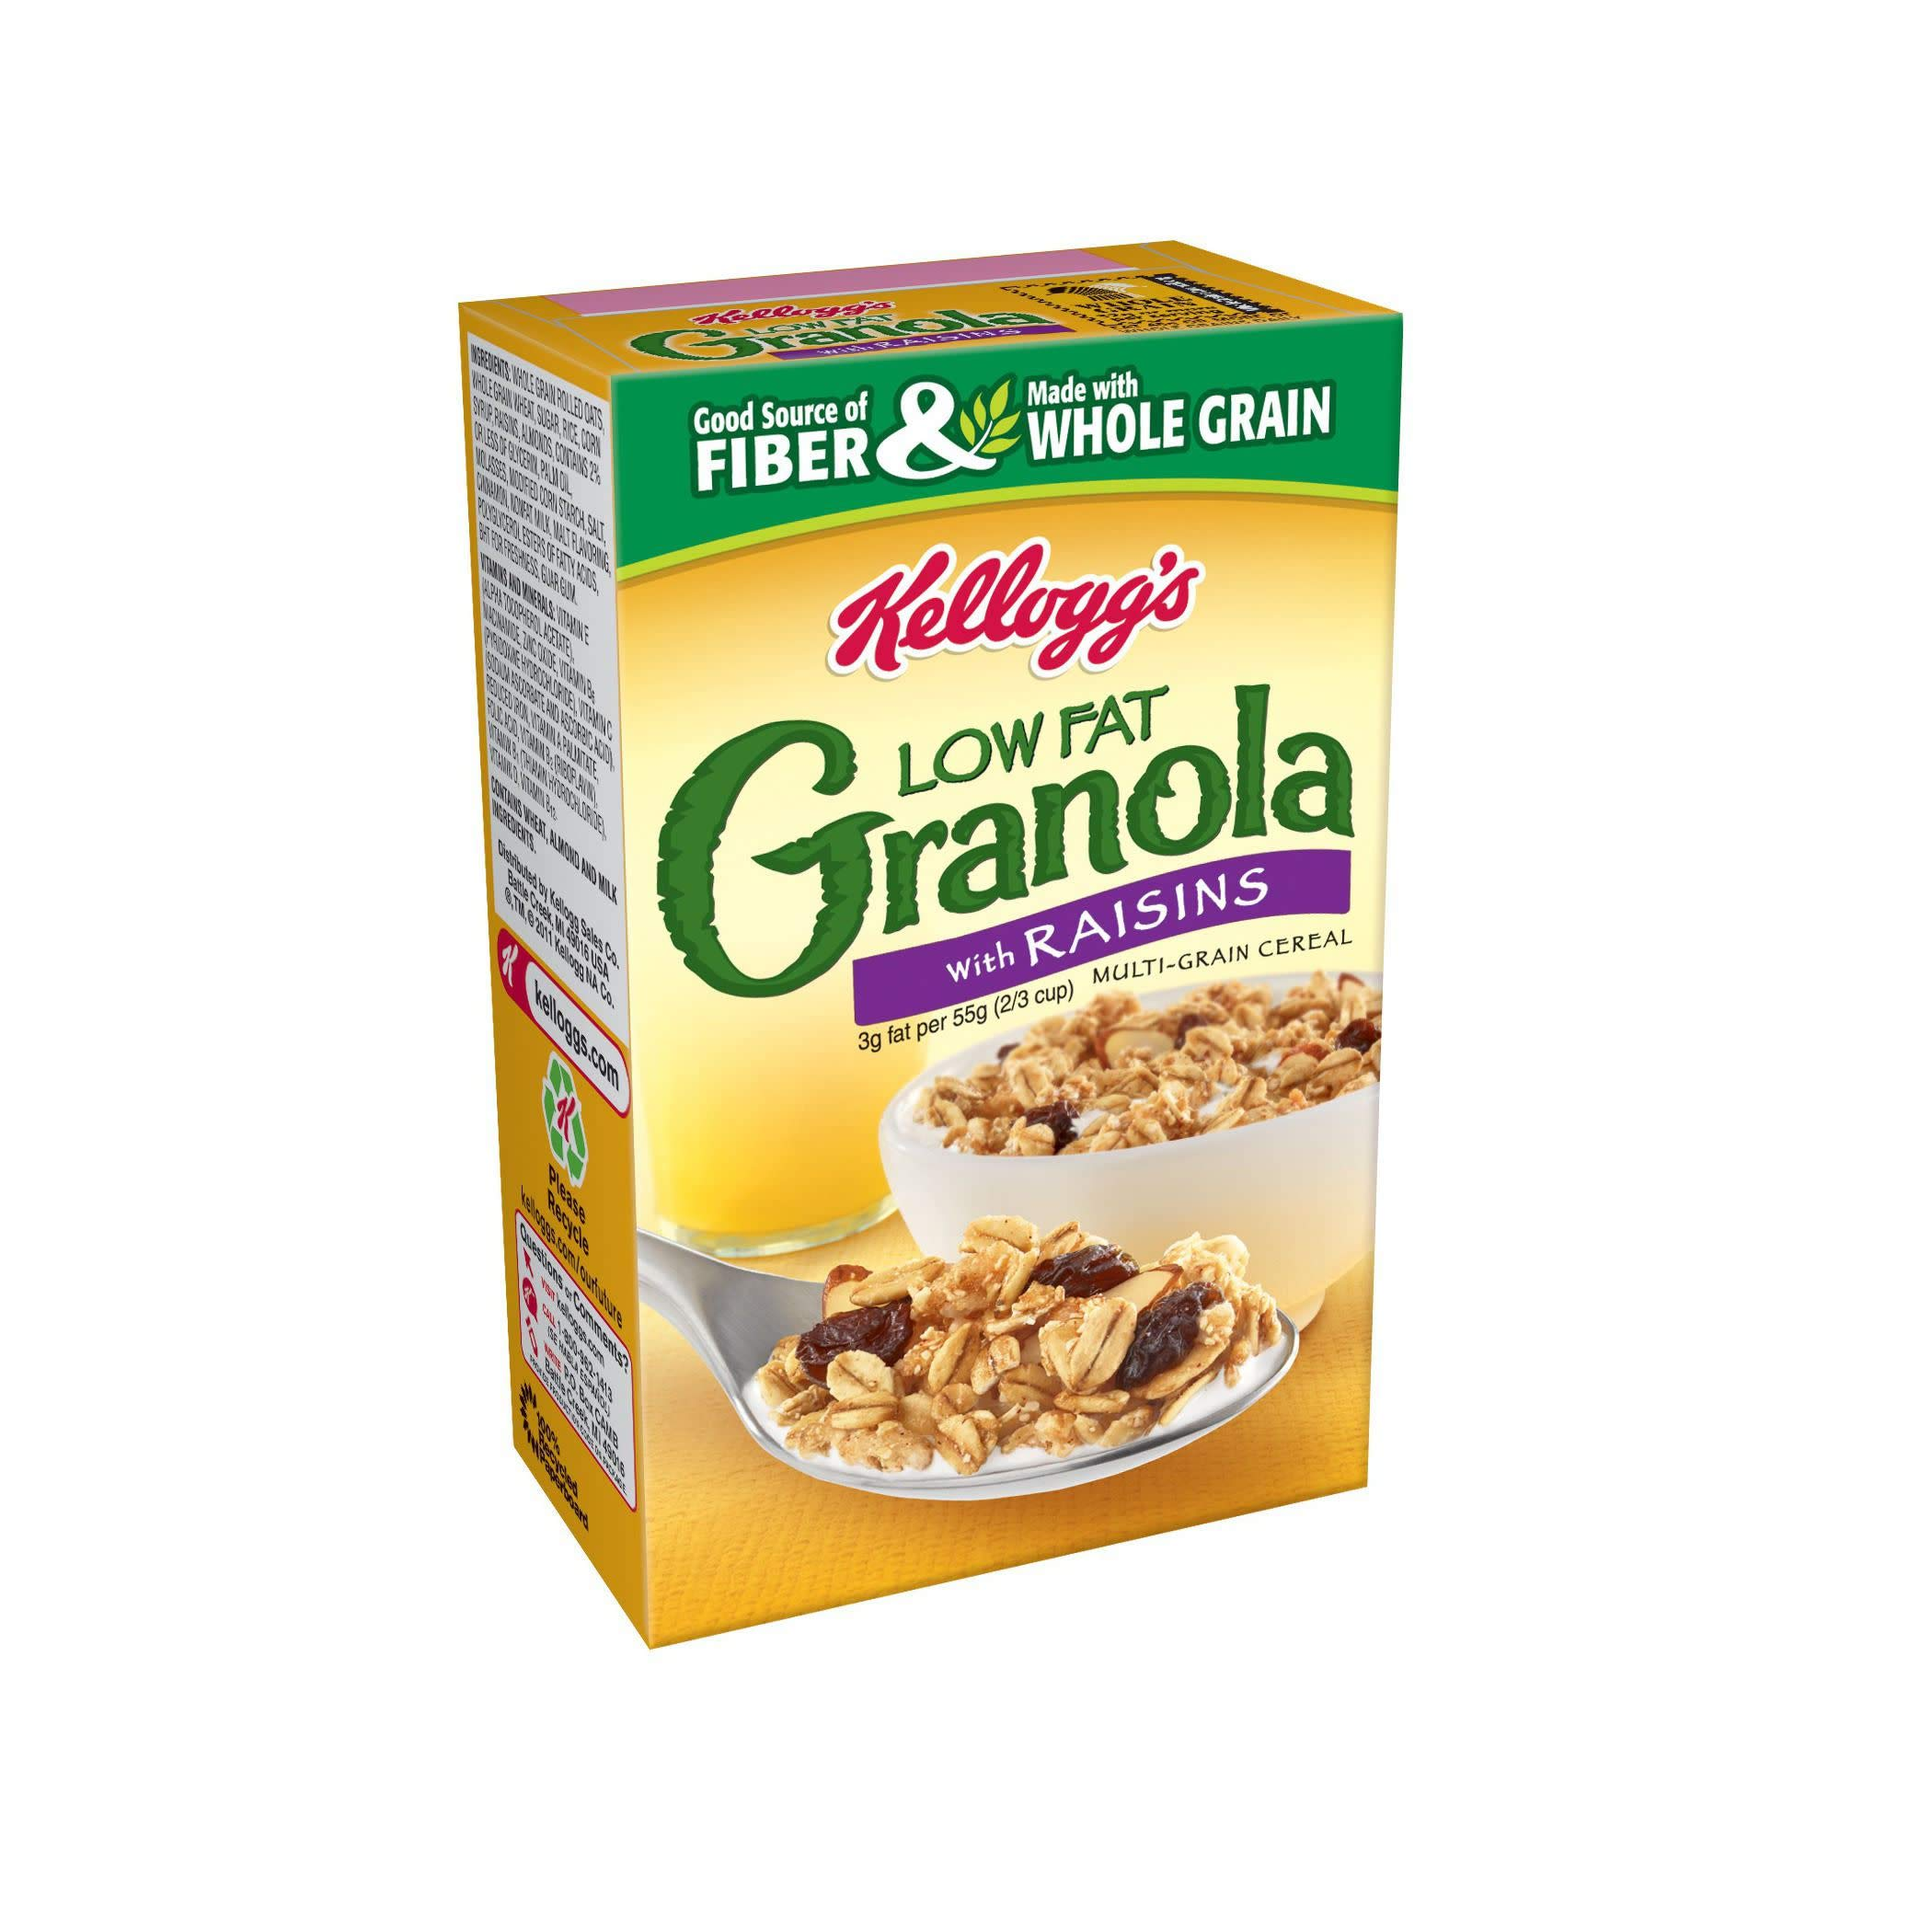 Kellogg's Breakfast Cereal, Low Fat Granola with Raisins, Low Fat, Good Source of Fiber, Single Serve, 2.2 oz Box(Pack of 70) by Kellogg's (Image #4)